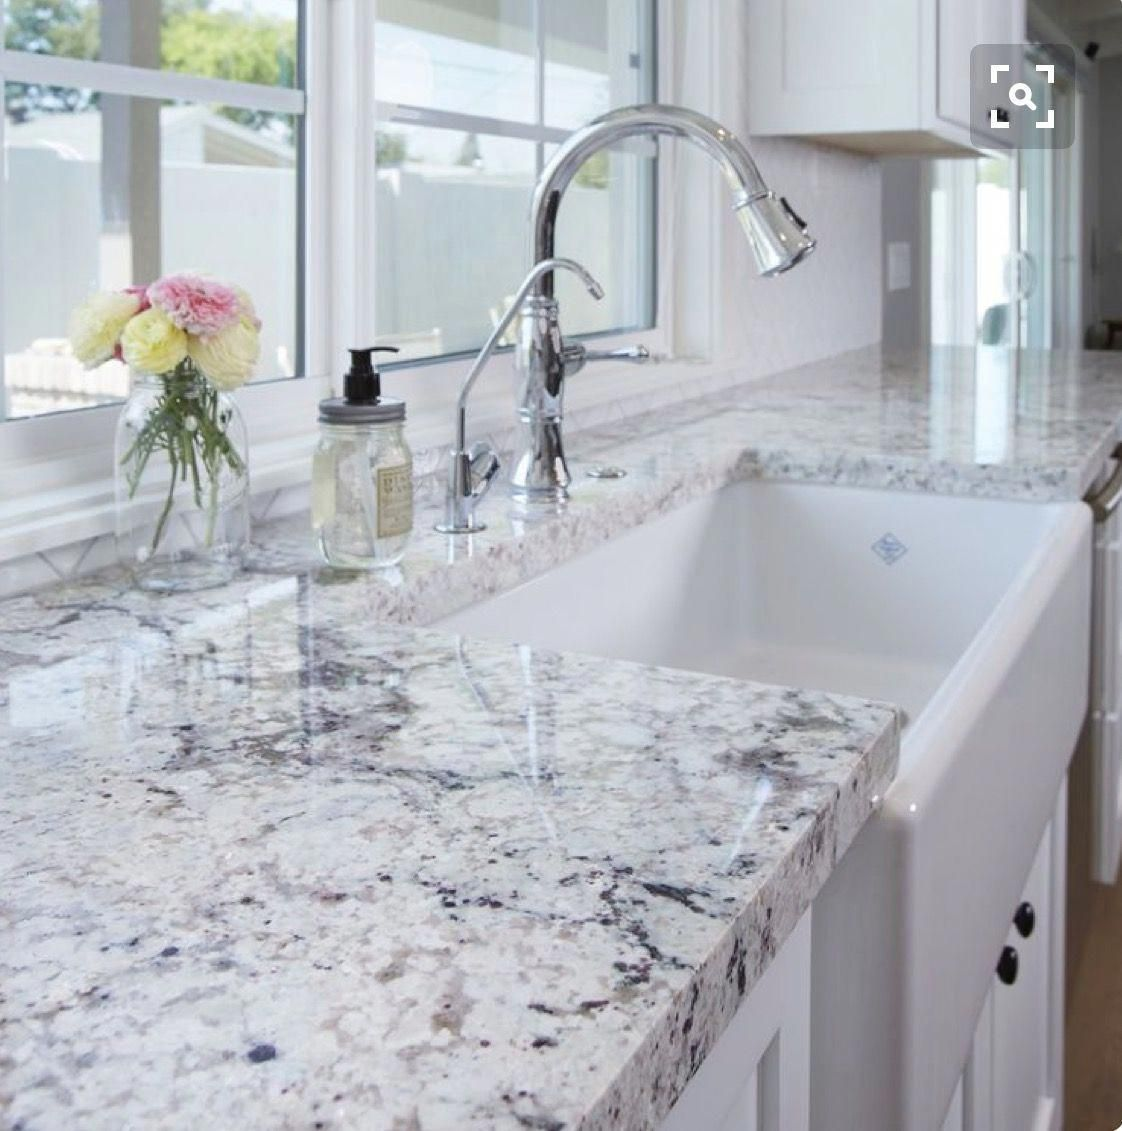 Laminate Countertops Are Often Considered The Most Inexpensive Of All Counter Tops Granite Countertops Kitchen Kitchen Remodel Countertops White Kitchen Design